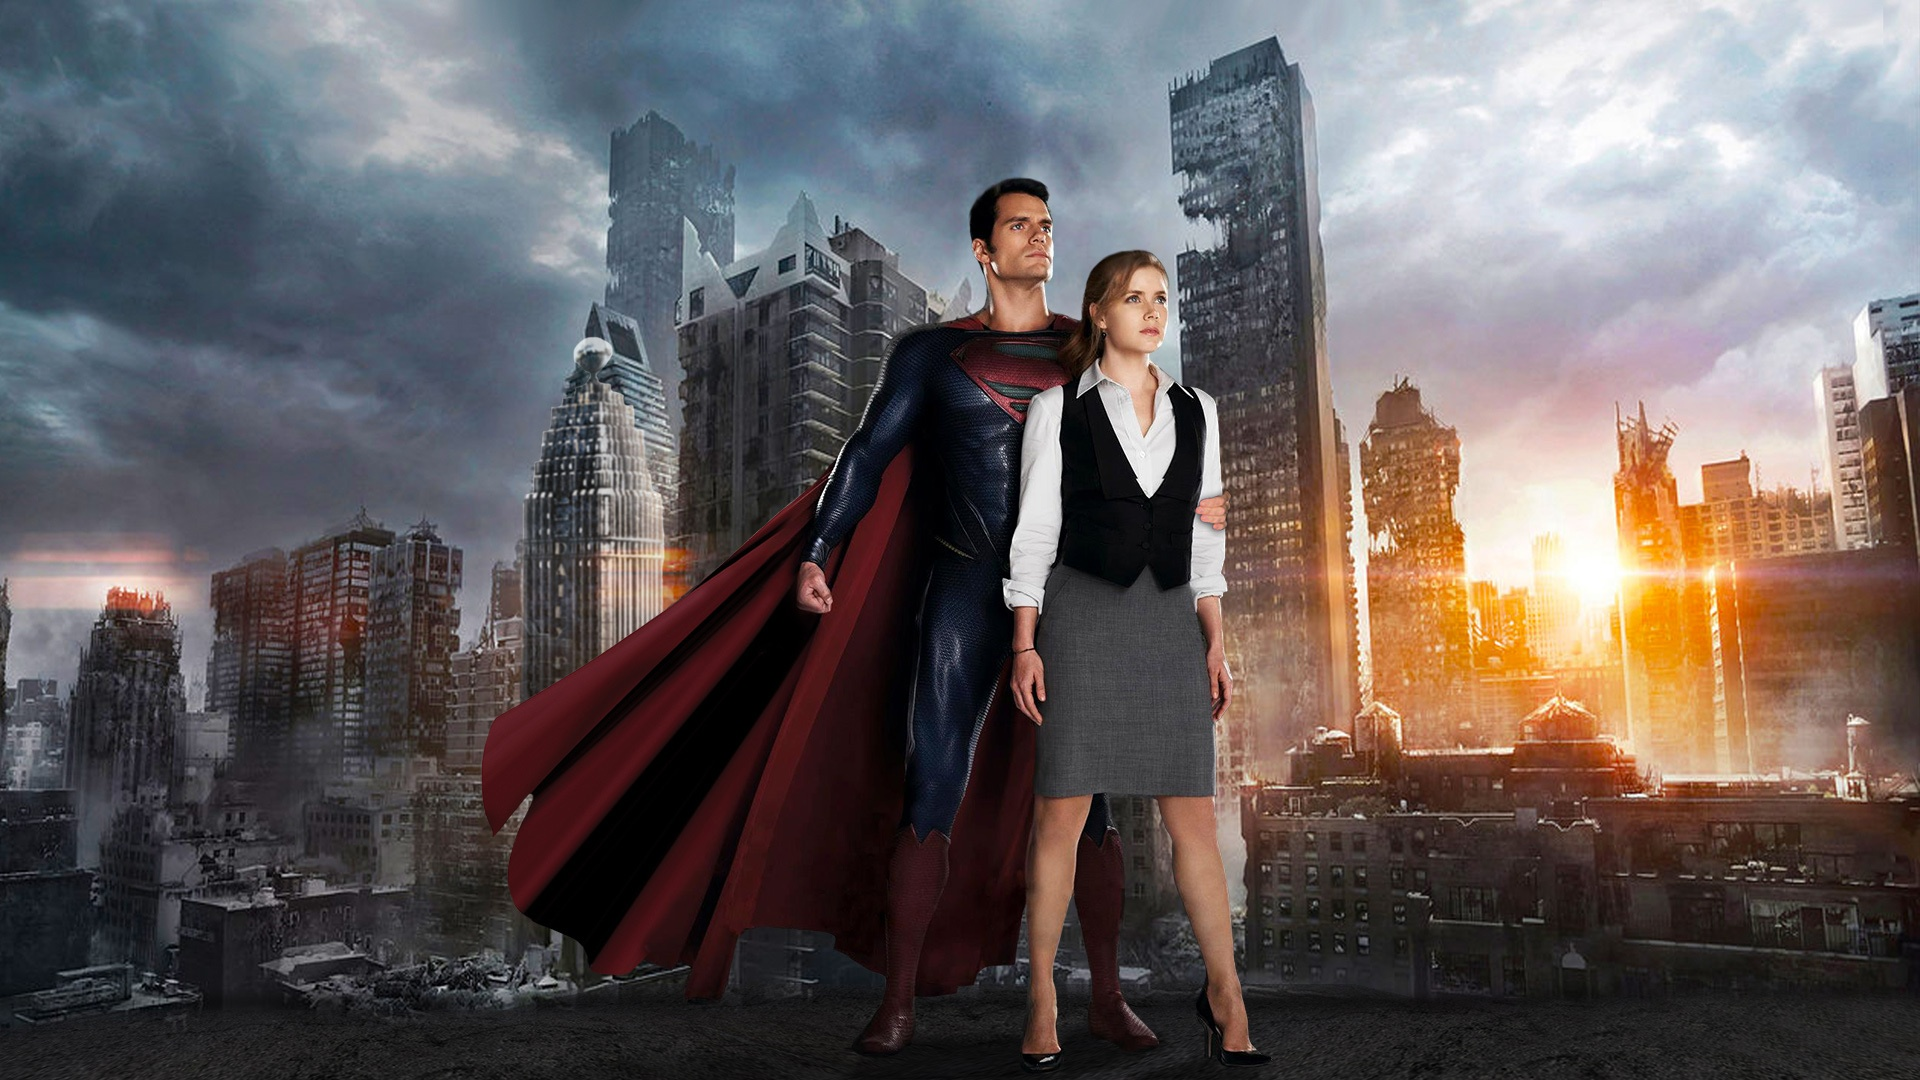 Superman (Henry Cavill) and Lois Lane (Amy Adams) in Man of Steel (2013)